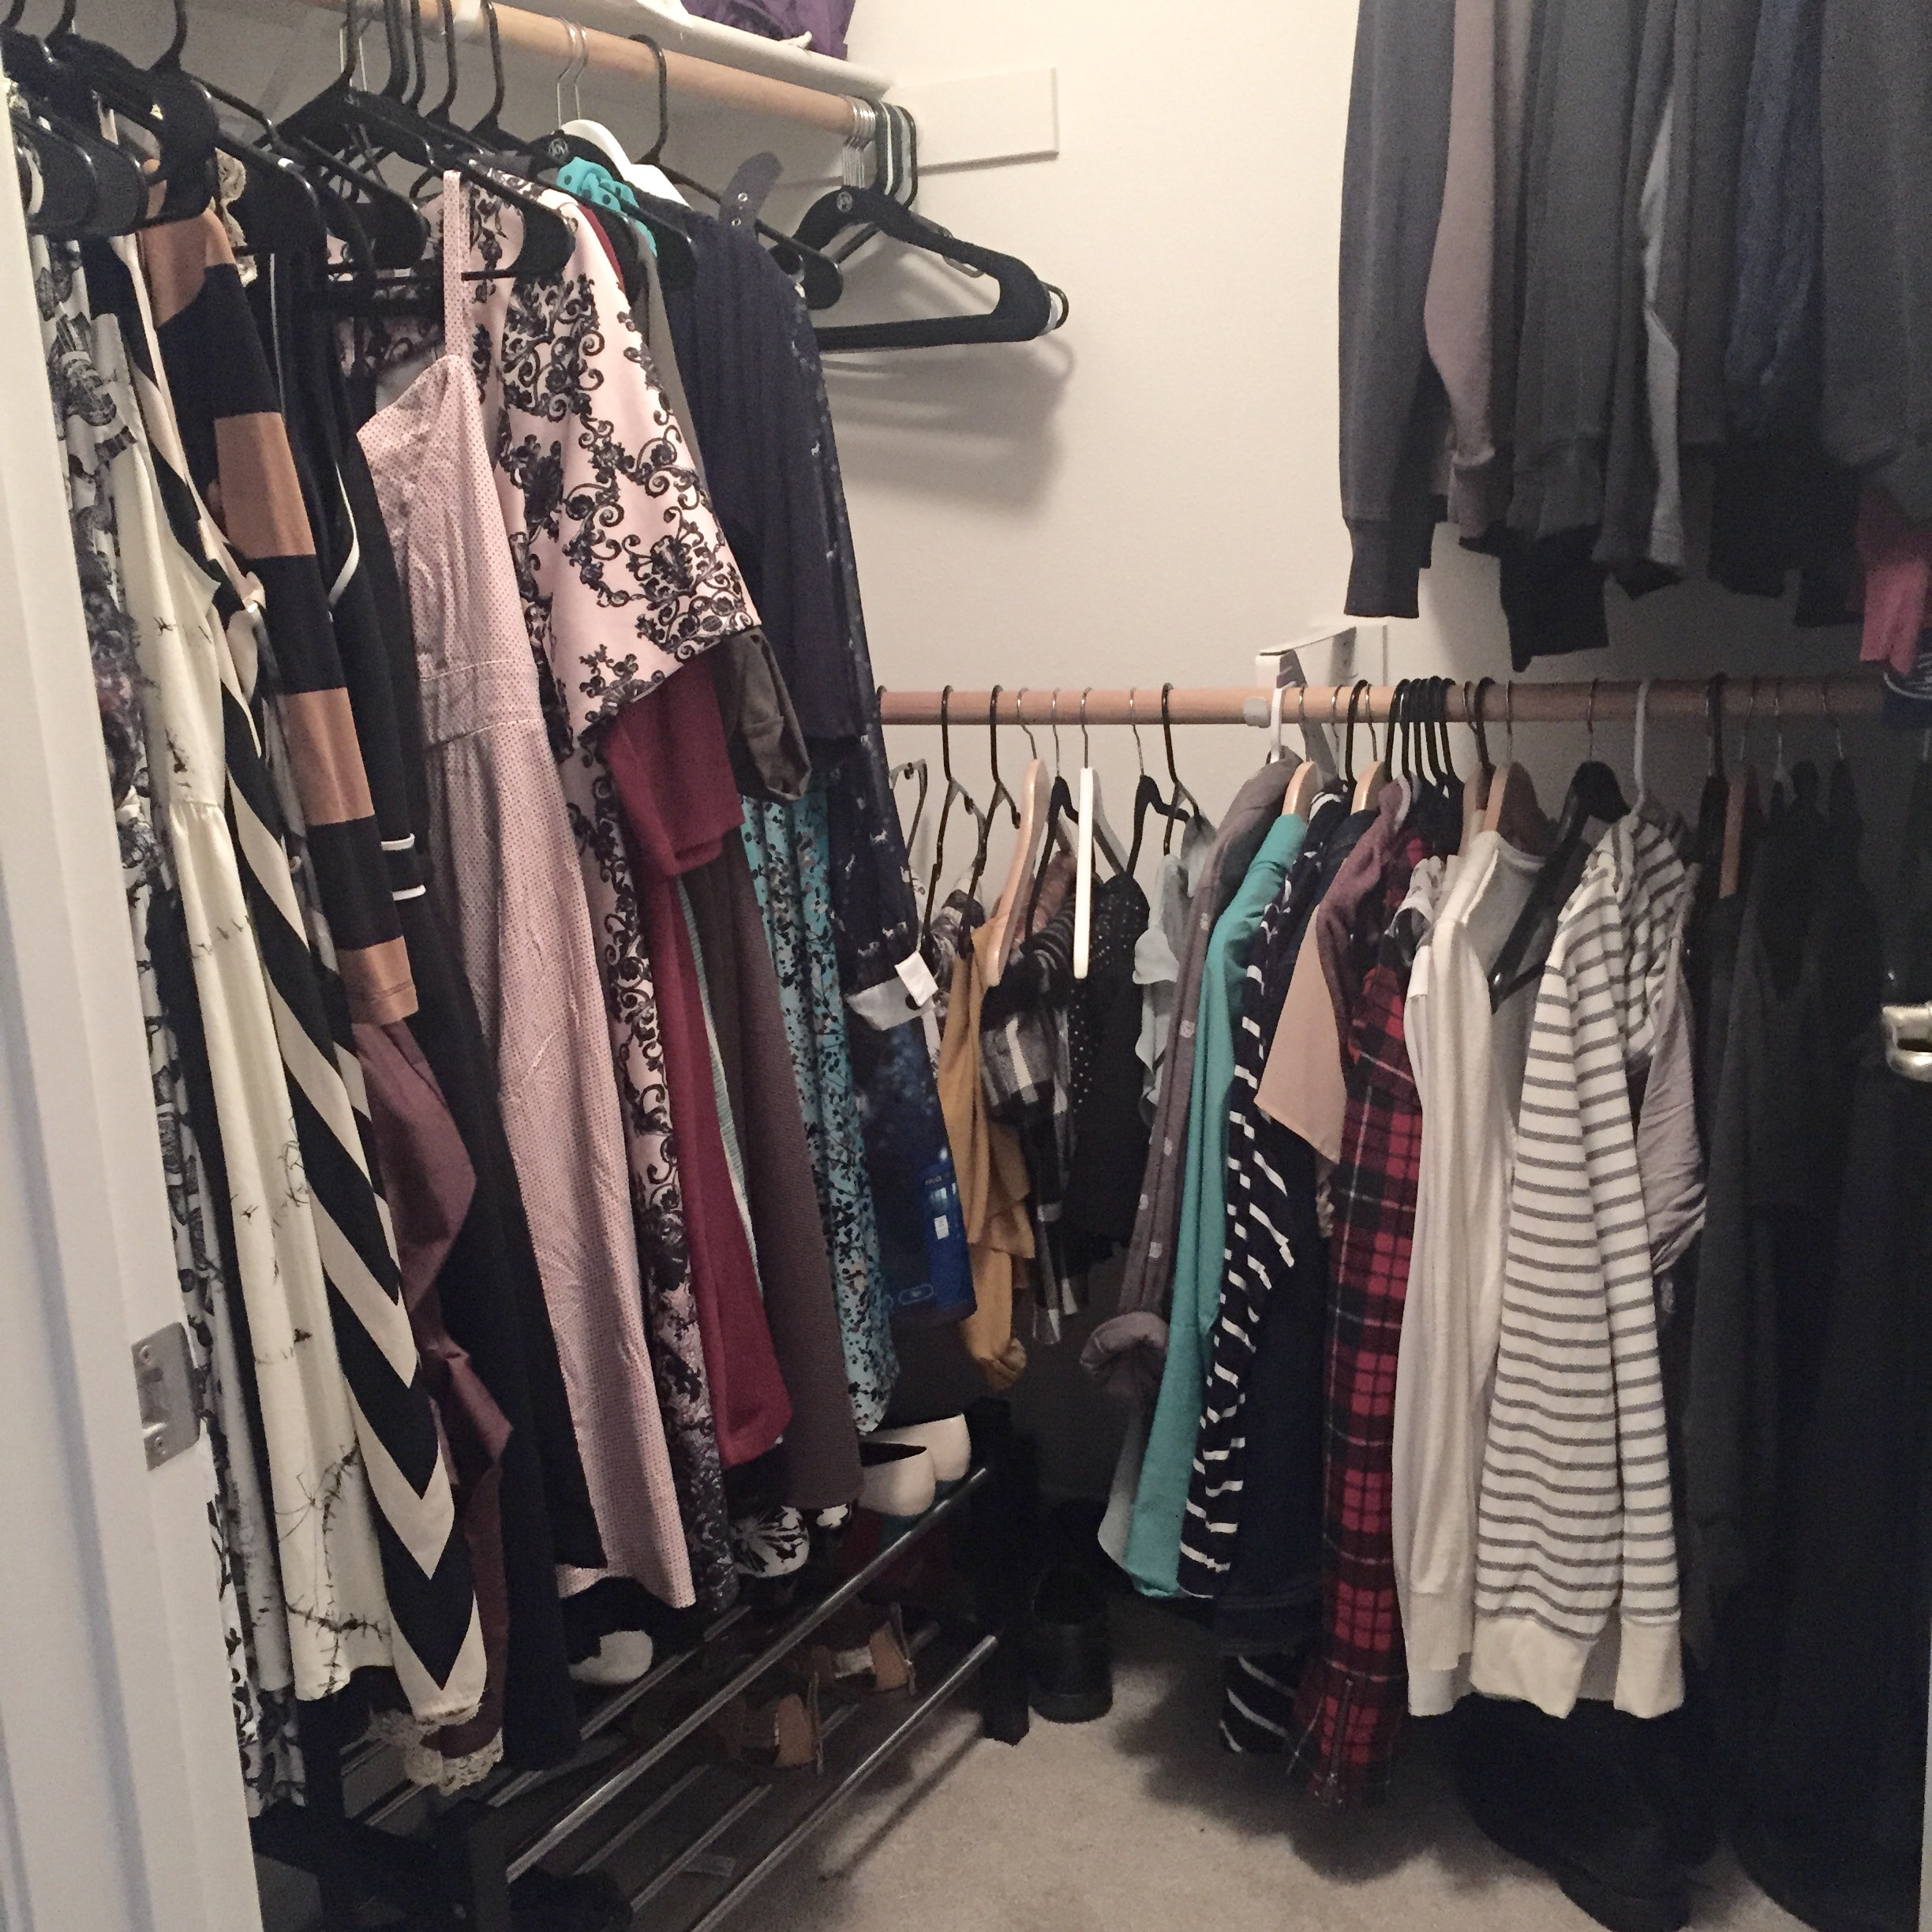 I can see the closet walls for once. It's beautiful.